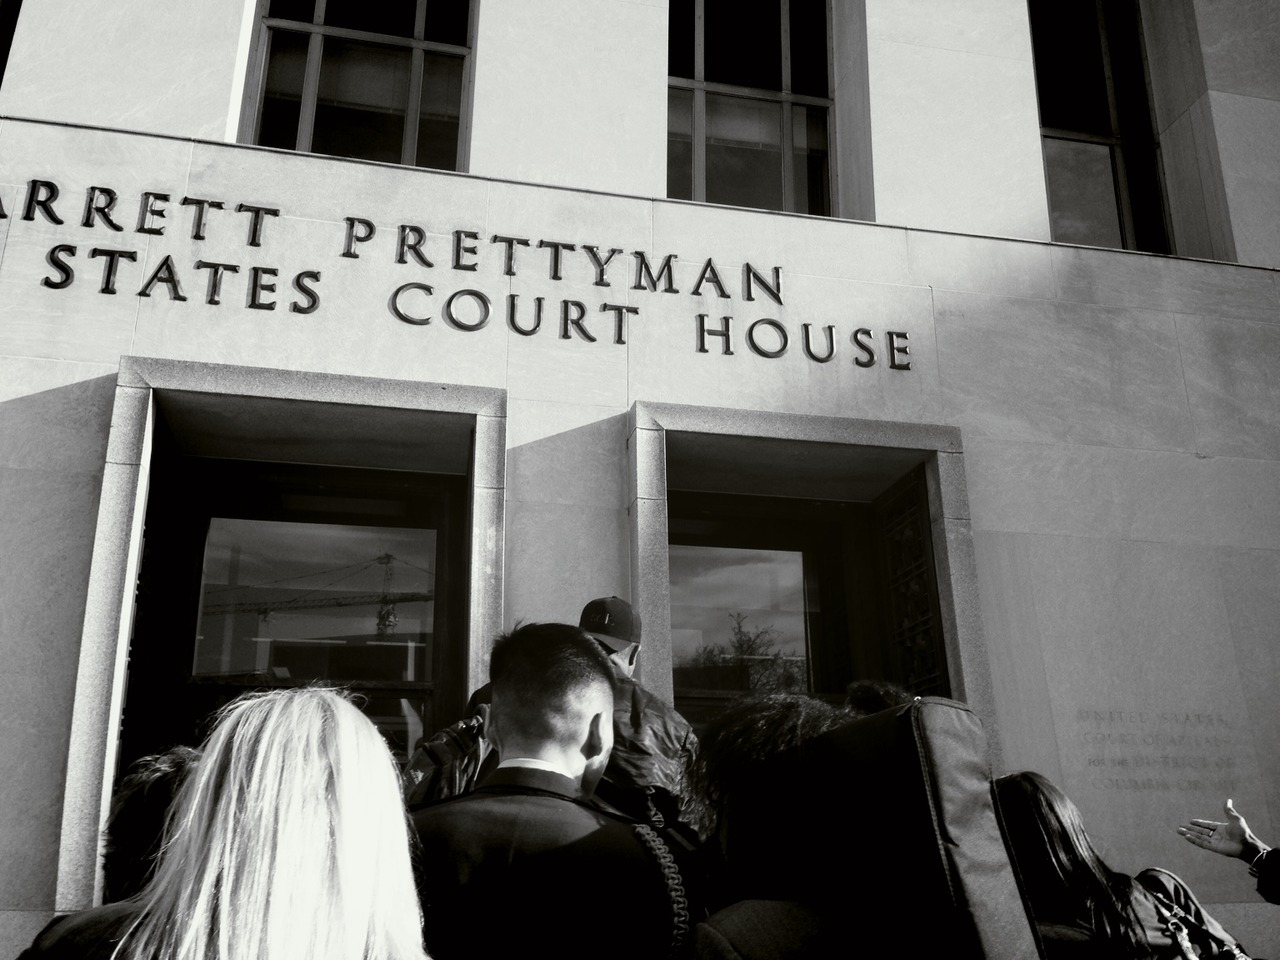 """I'm going in with my head held high"" -@ltdanchoi heads into court #fail2obey at E. Barrett Prettyman Federal Courthouse – View on Path."